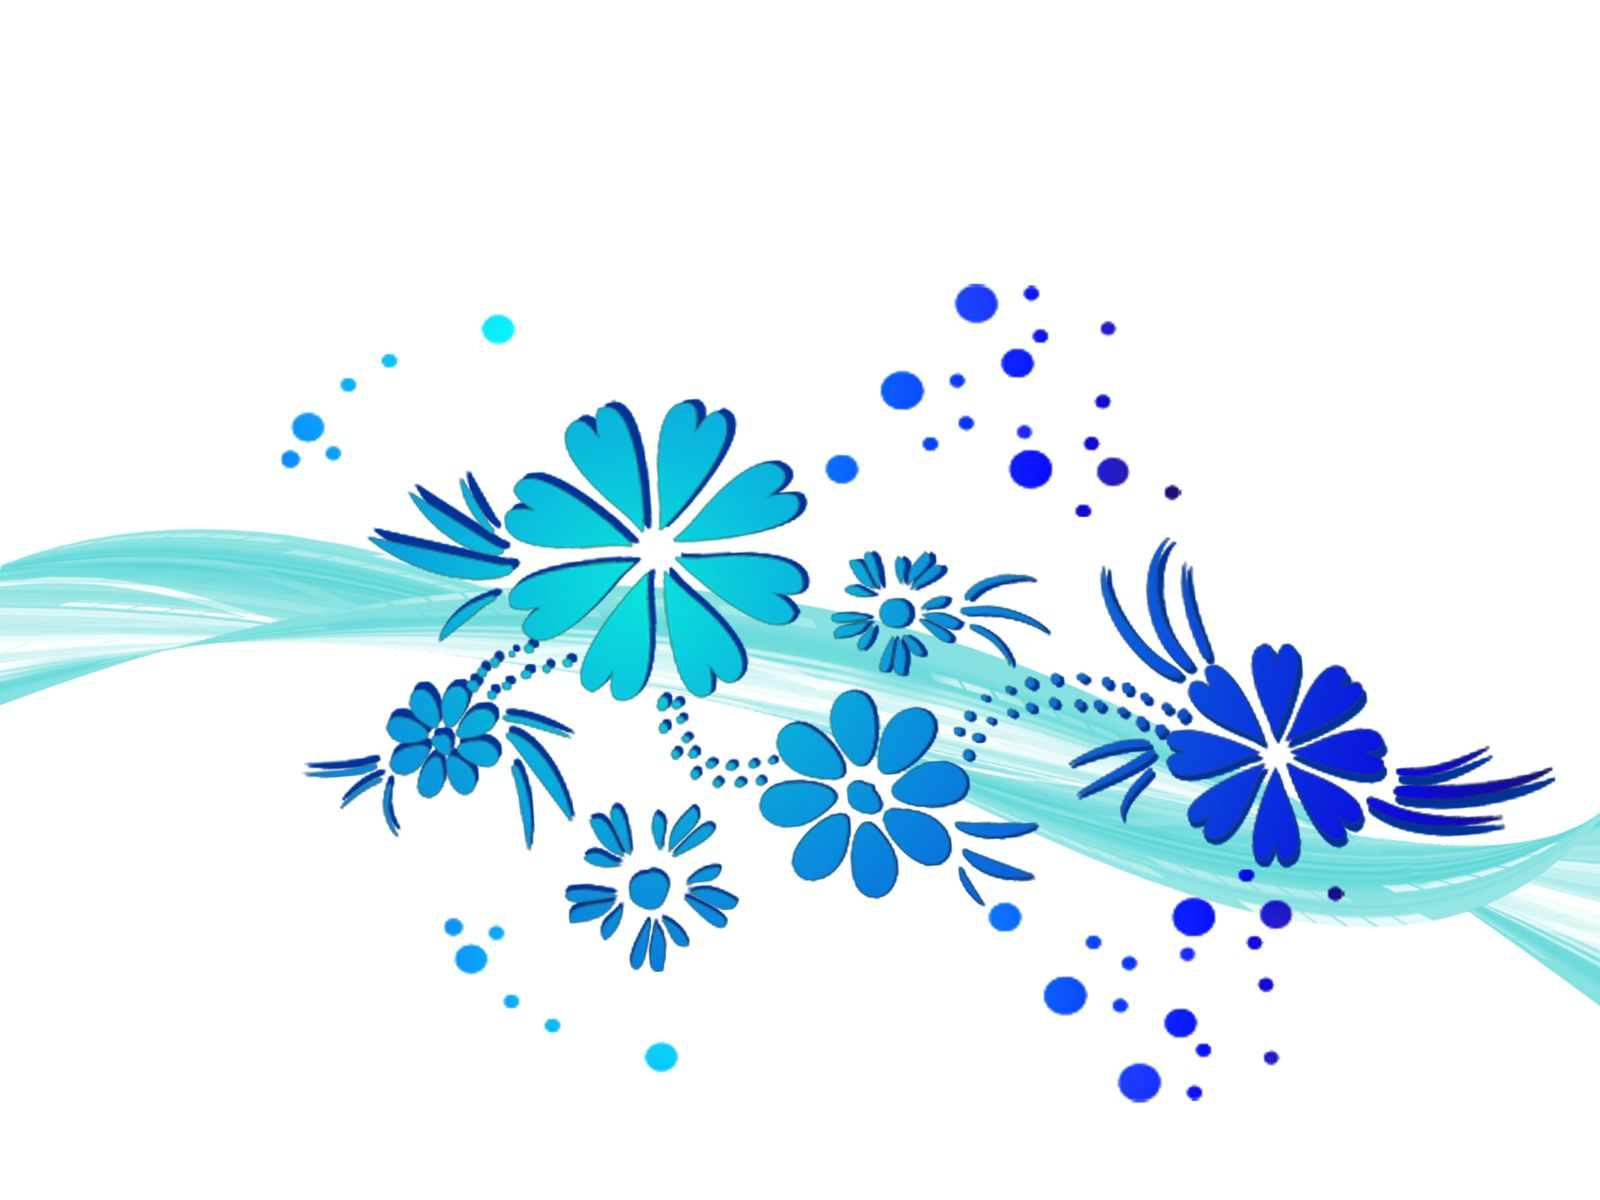 Pin By Kelly Matlick On Classrooom Blue Flowers Background Flower Background Wallpaper Blue Flower Png